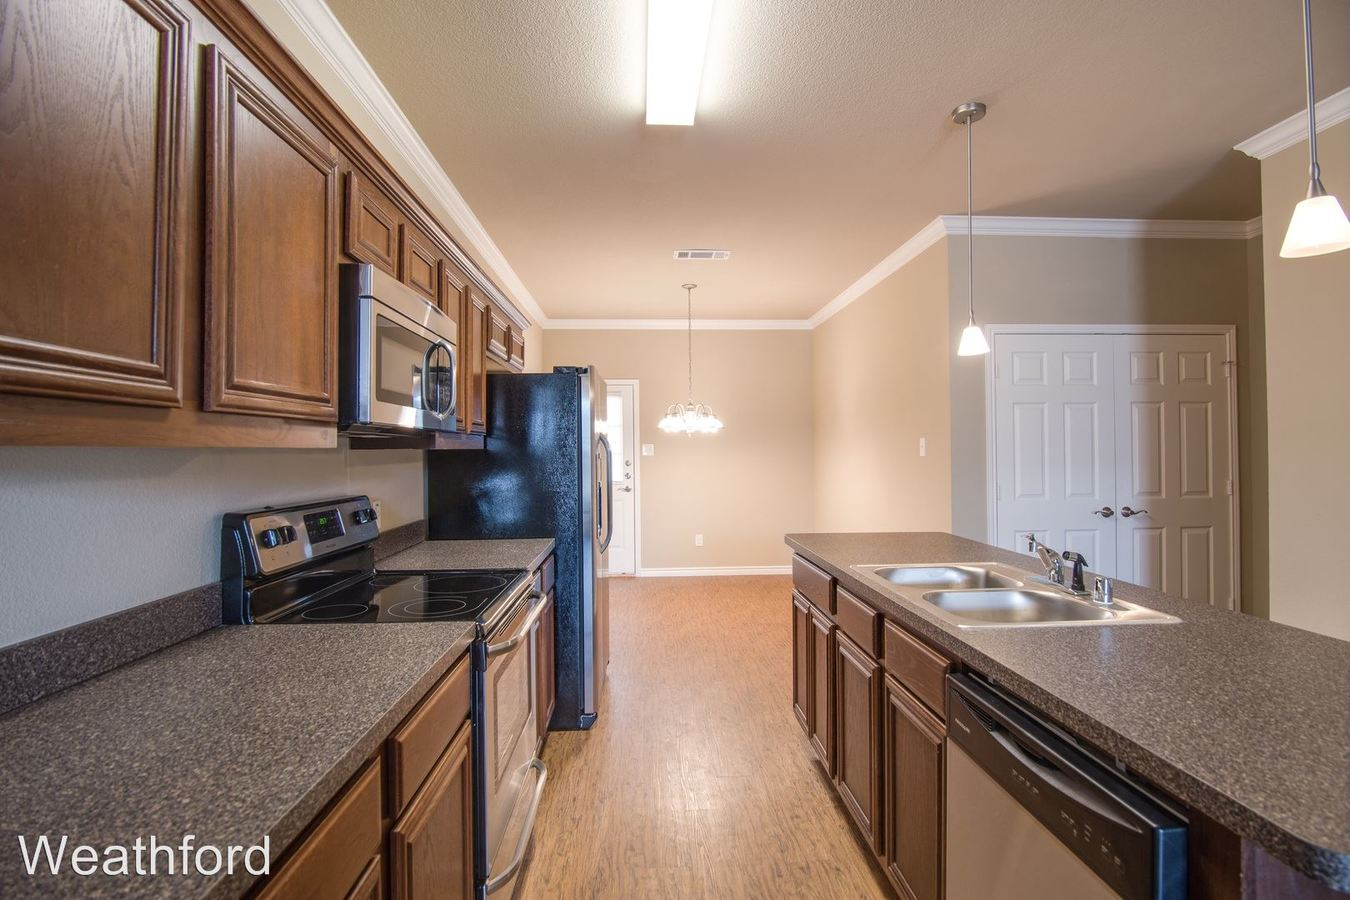 3 Bedrooms 2 Bathrooms Apartment for rent at Newcastle Dr. in Weatherford, TX